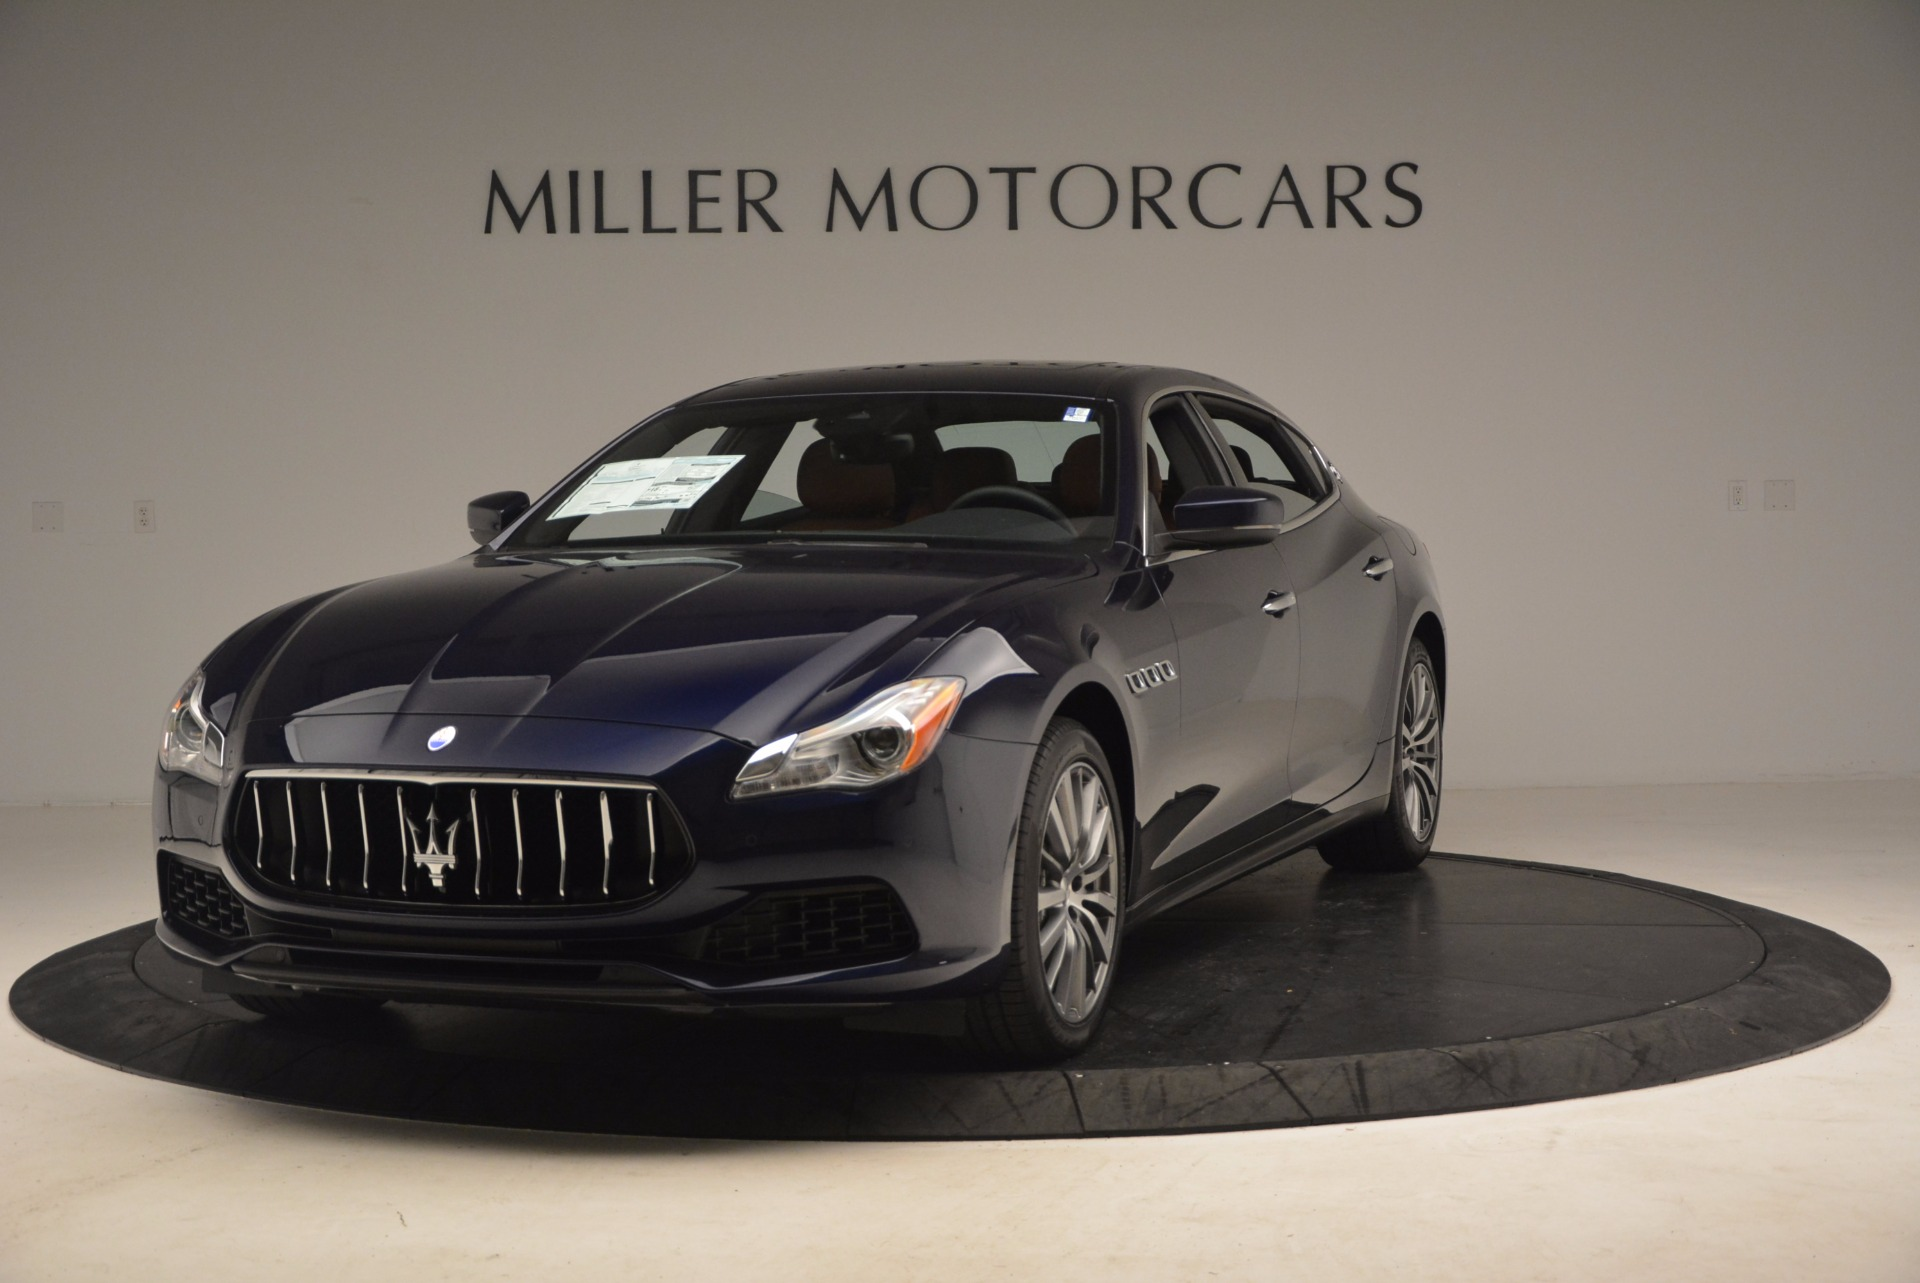 New 2017 Maserati Quattroporte S Q4 for sale Sold at Alfa Romeo of Westport in Westport CT 06880 1